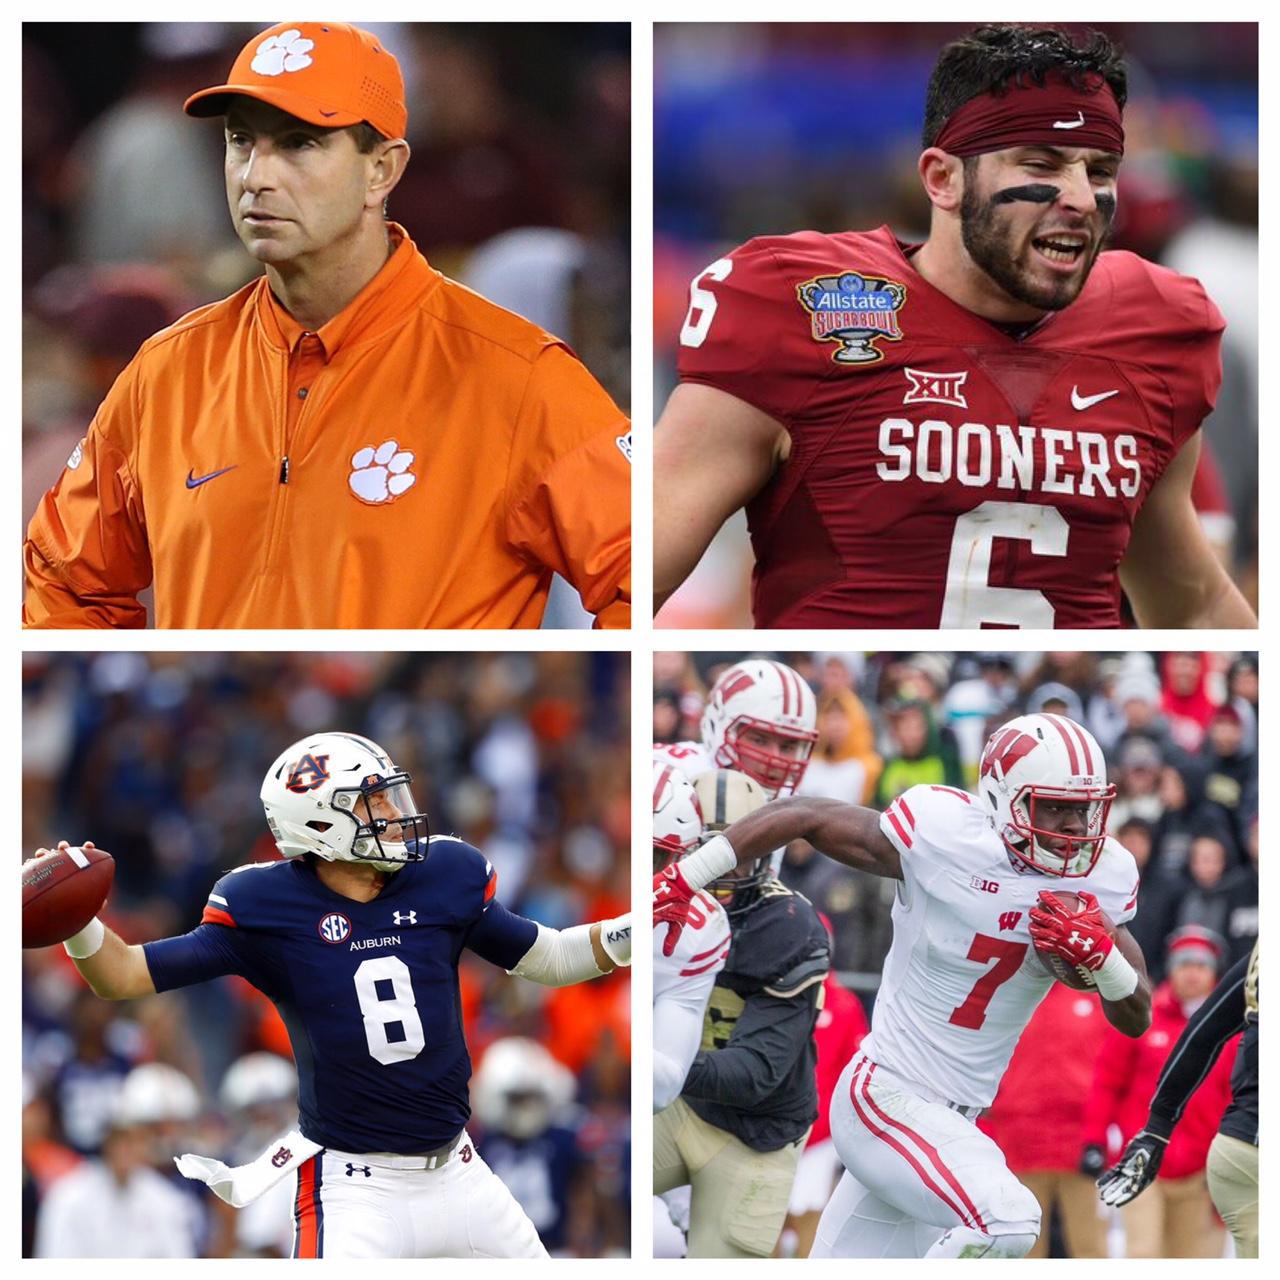 Preview: College Football Championship Week